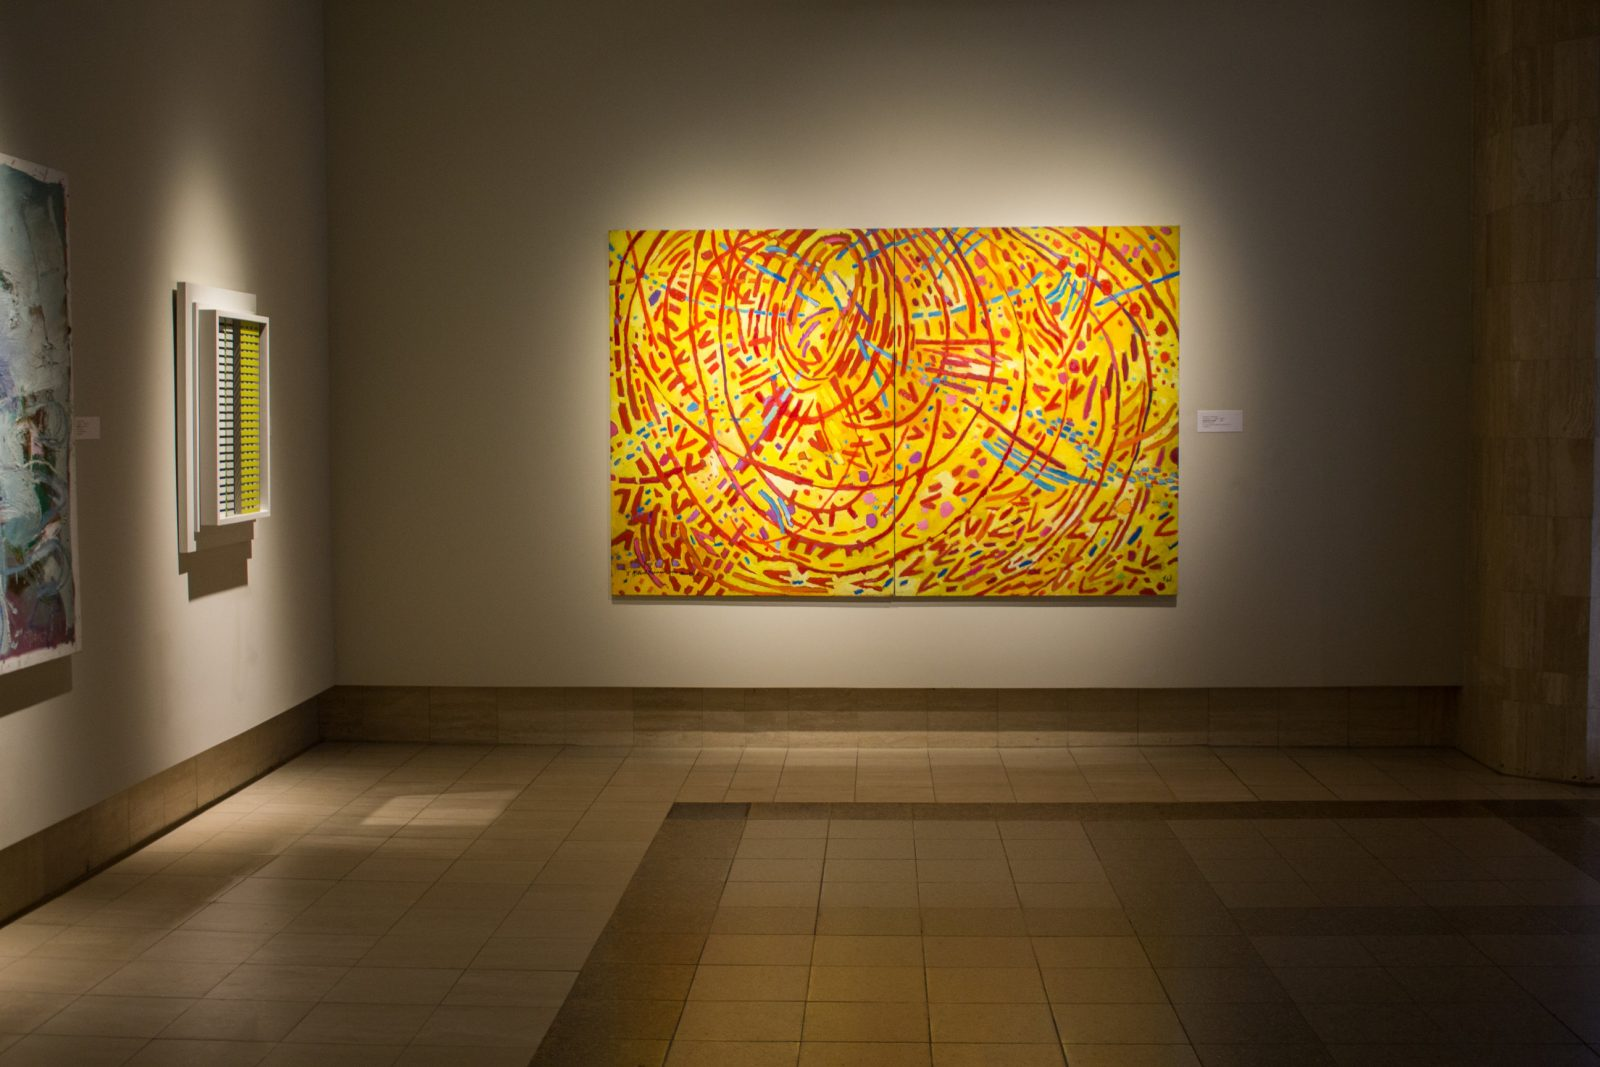 Mildred Thompson (American, 1936 – 2003), Magnetic Fields, 1991, oil on canvas, 61 ¾ x 95 ½ in.